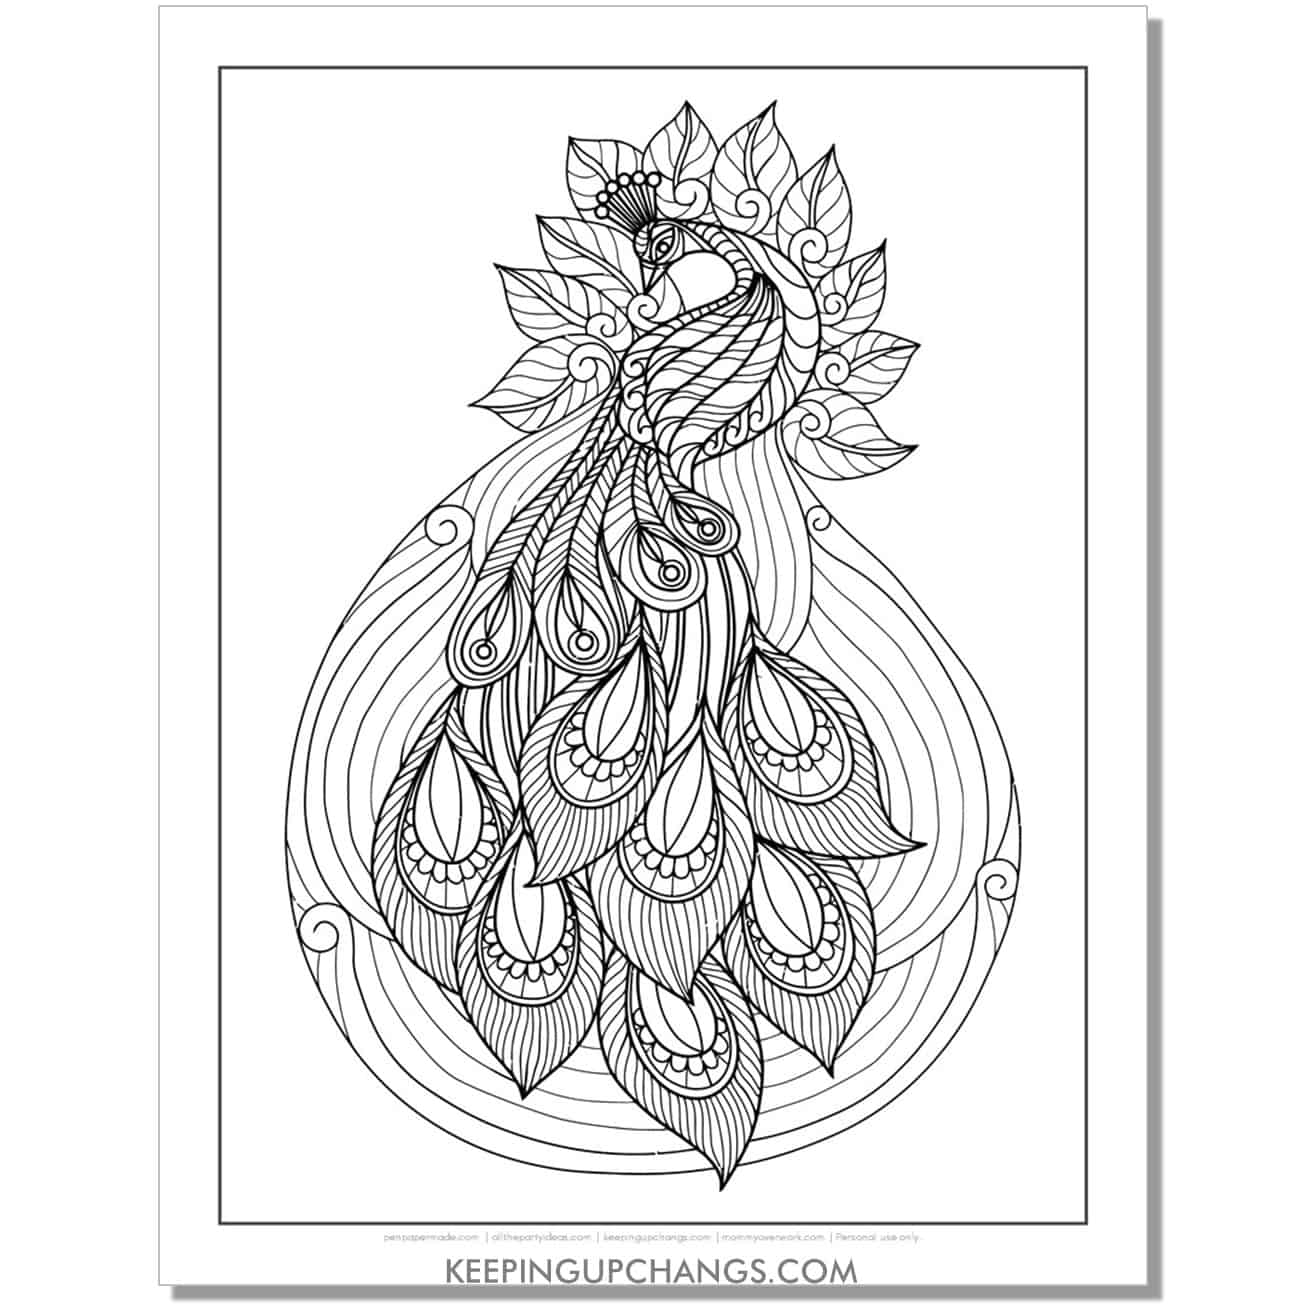 beautiful peacock coloring page.